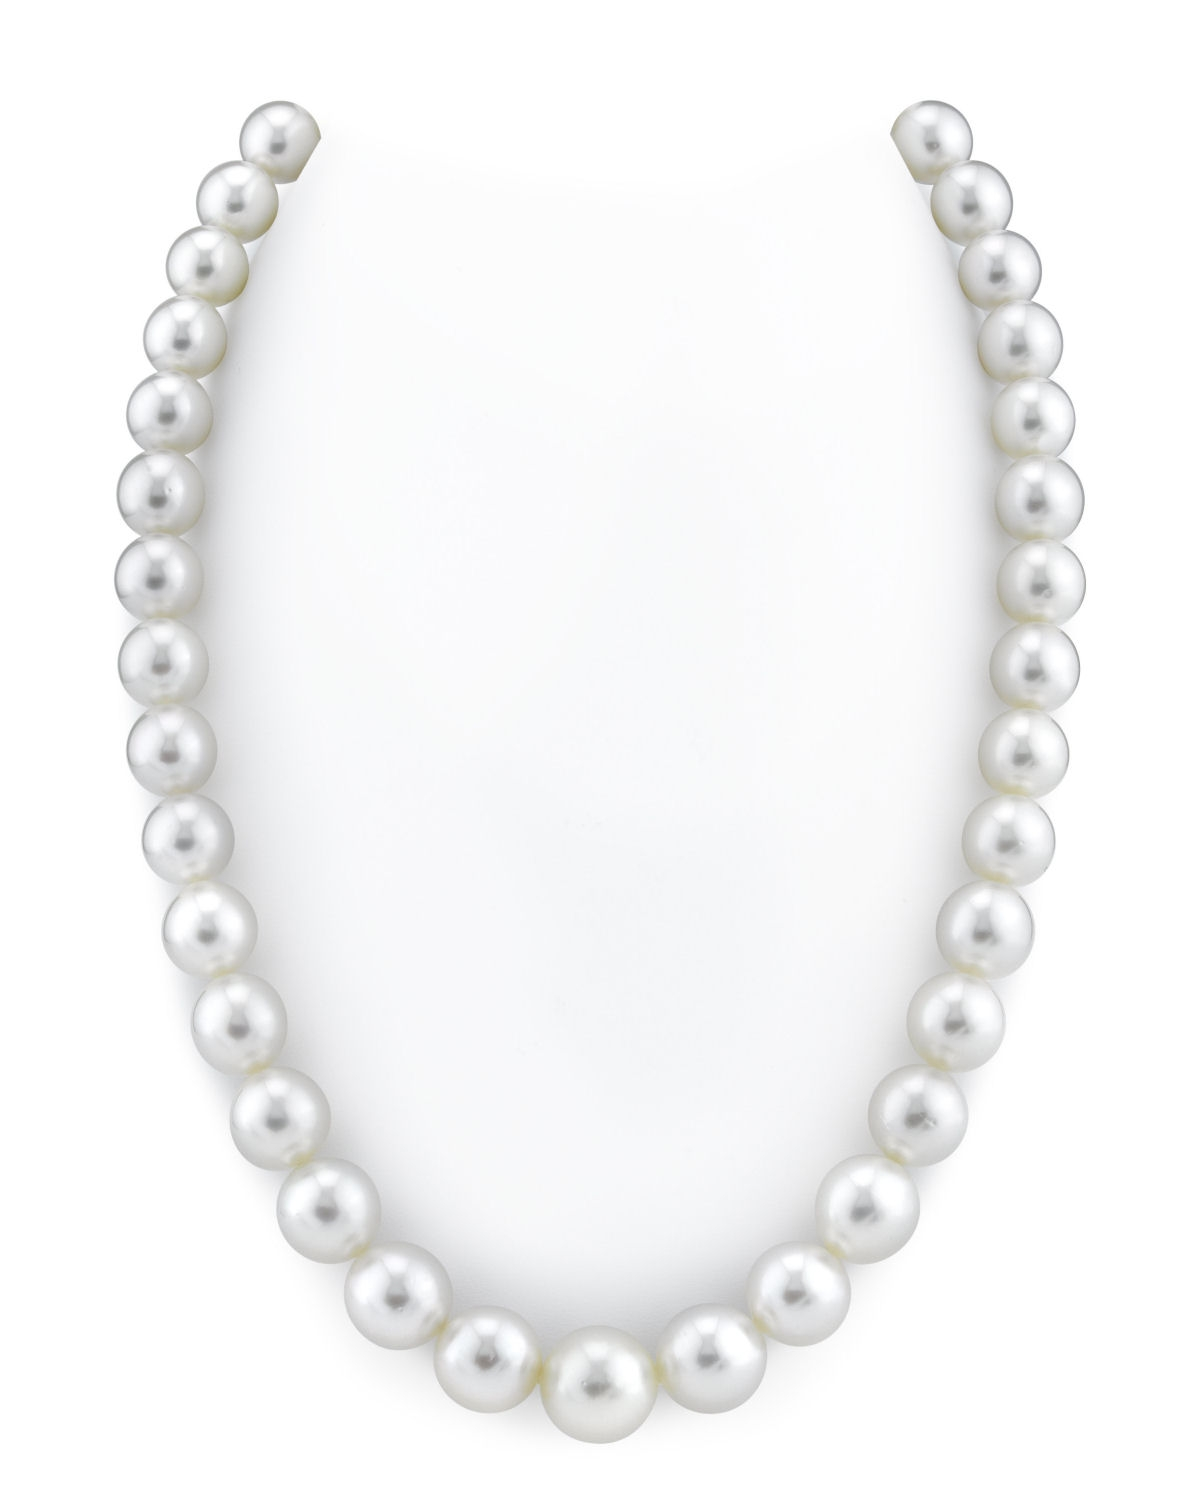 Cassie Chadwick's Pearl Necklace